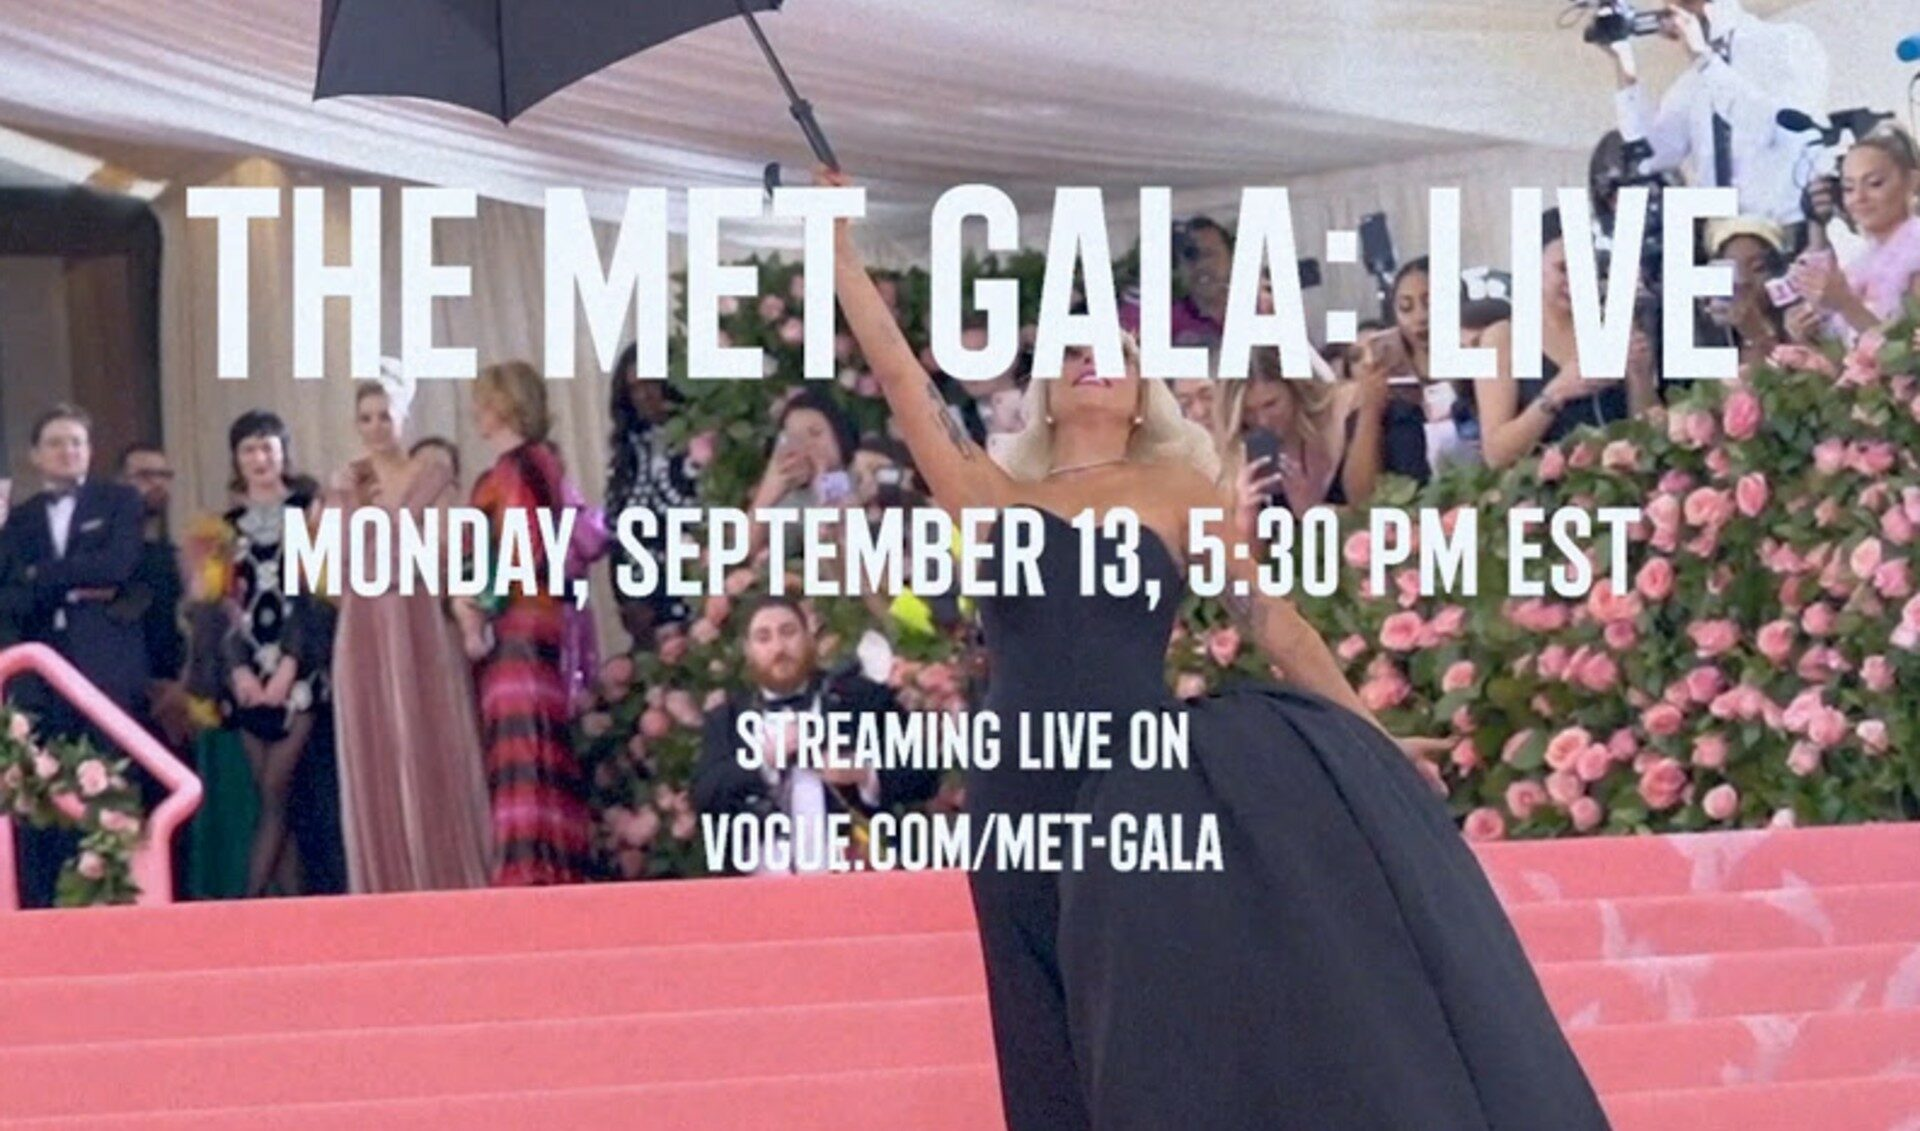 Vogue To Stream Met Gala Red Carpet, As Influencer Attendance Looms Large